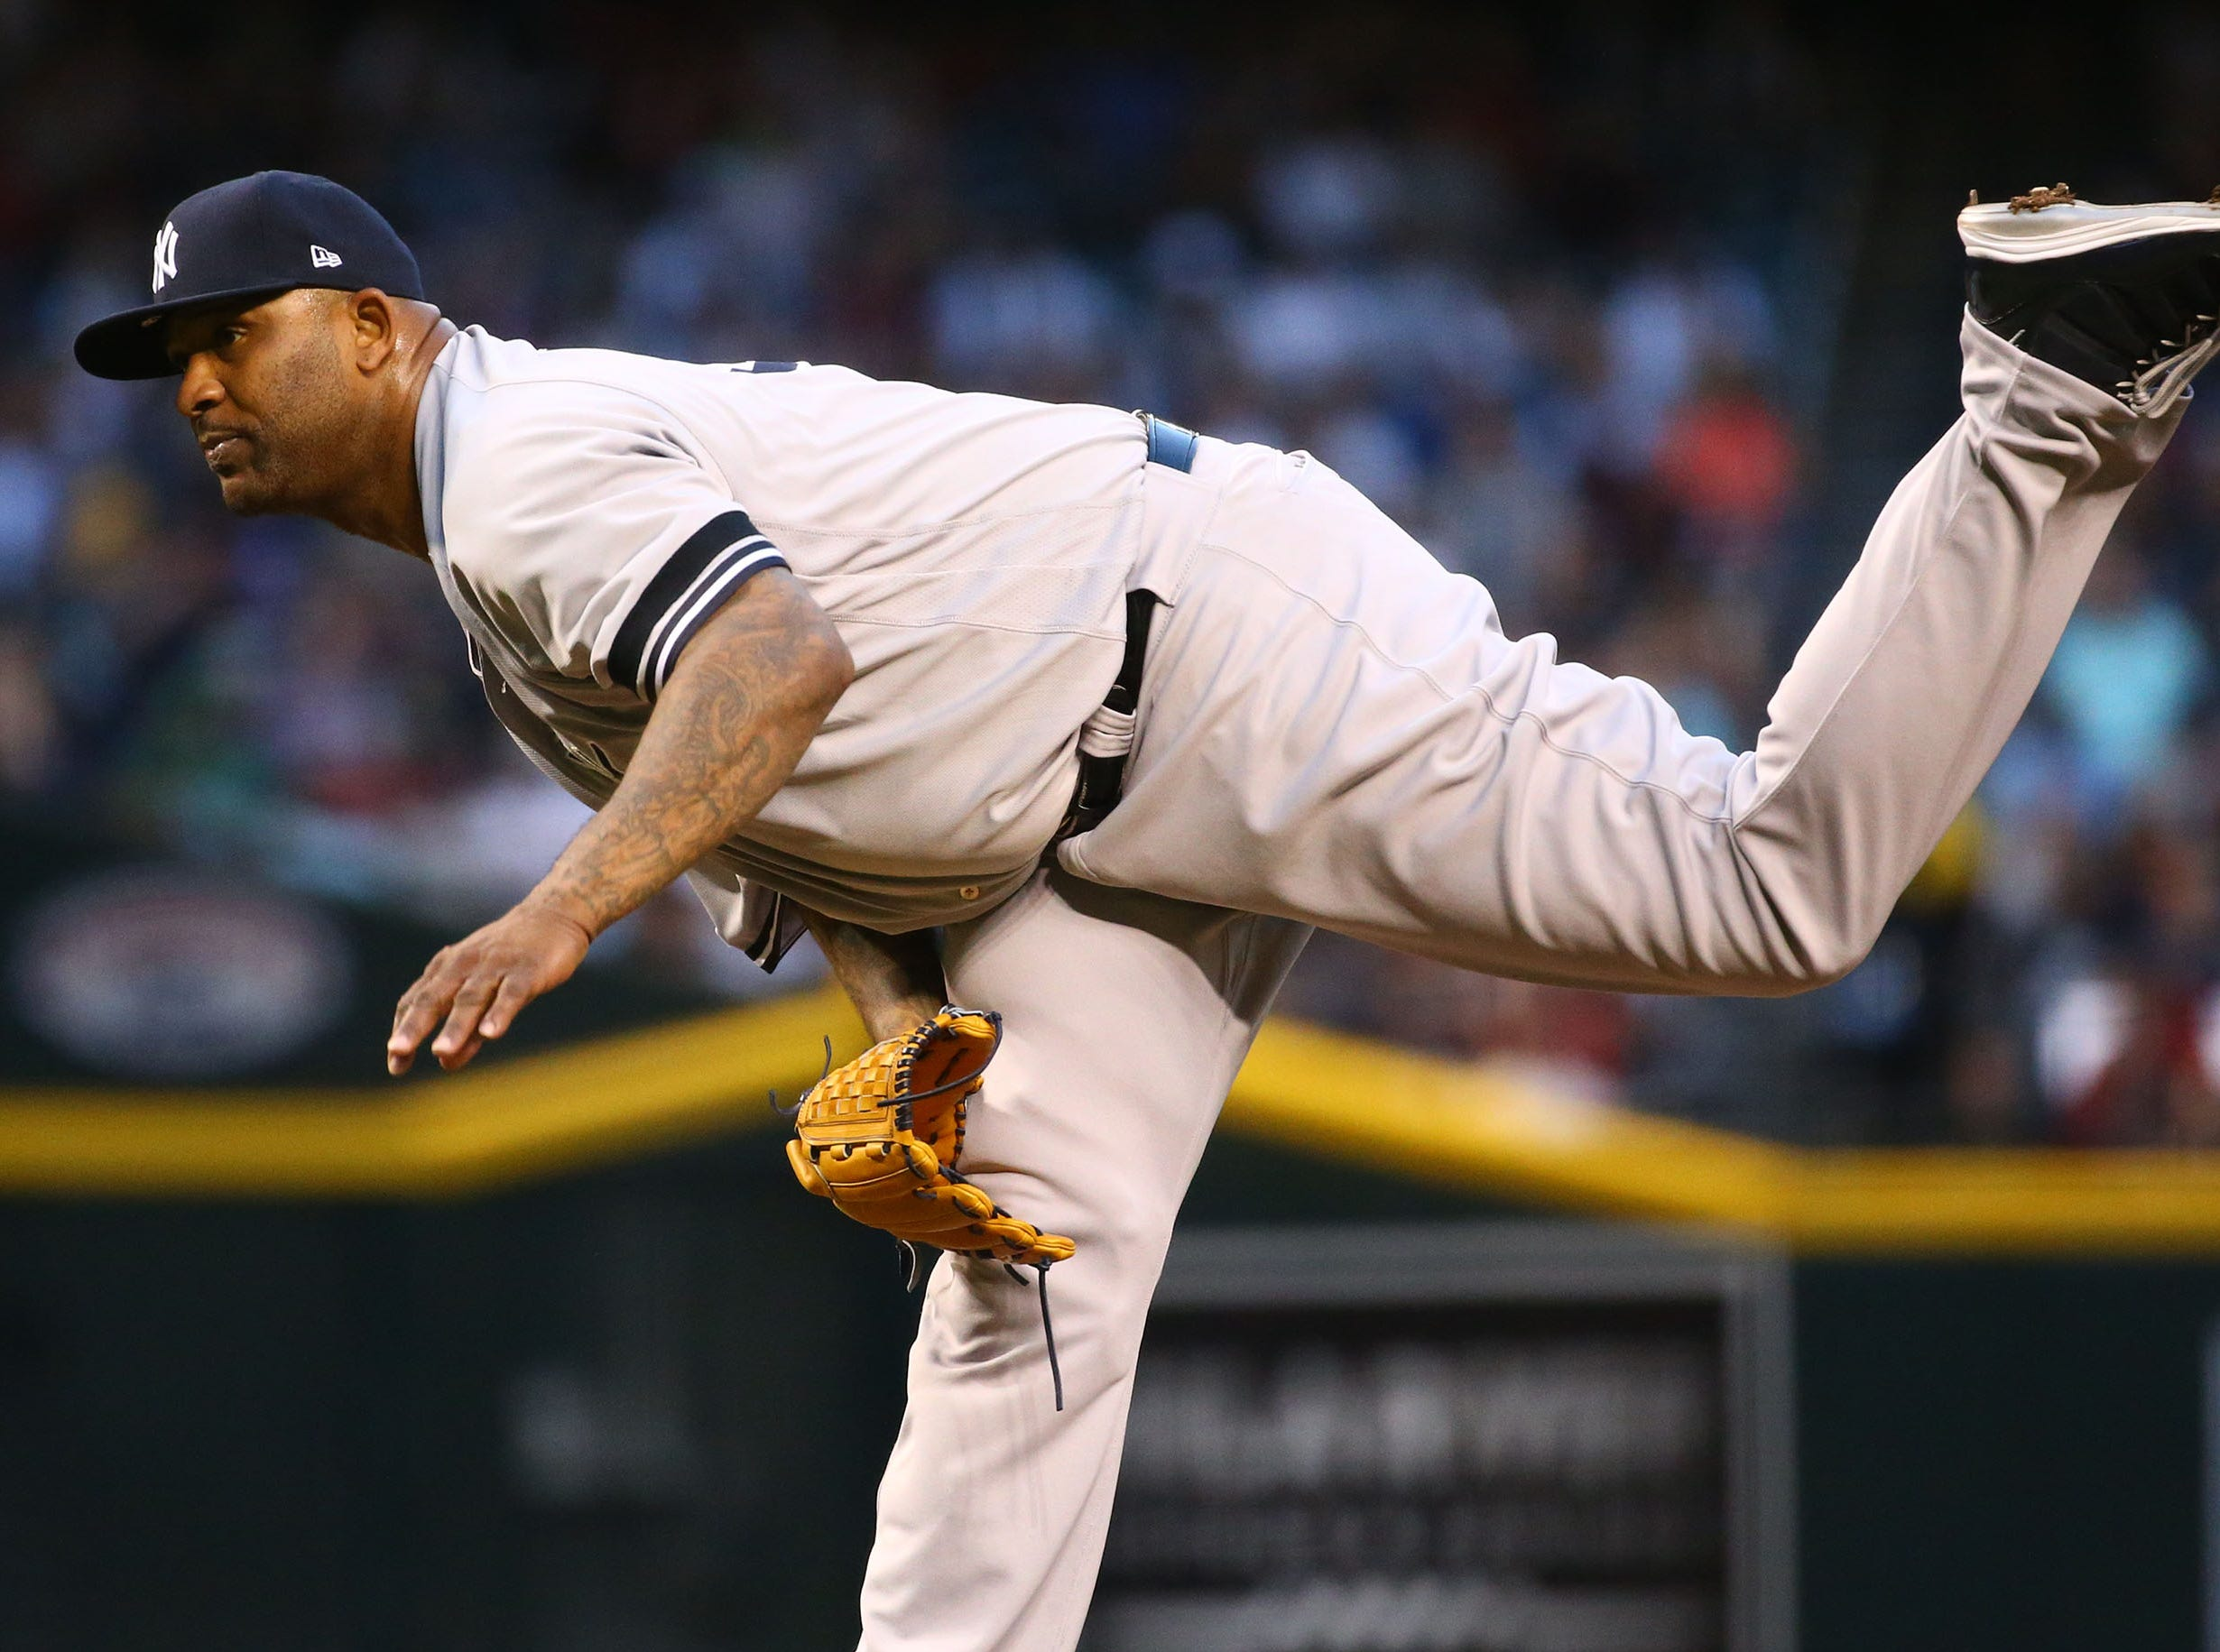 New York Yankees pitcher CC Sabathia throws to the Arizona Diamondbacks in the first inning on Apr. 30, 2019 at Chase Field in Phoenix, Ariz.